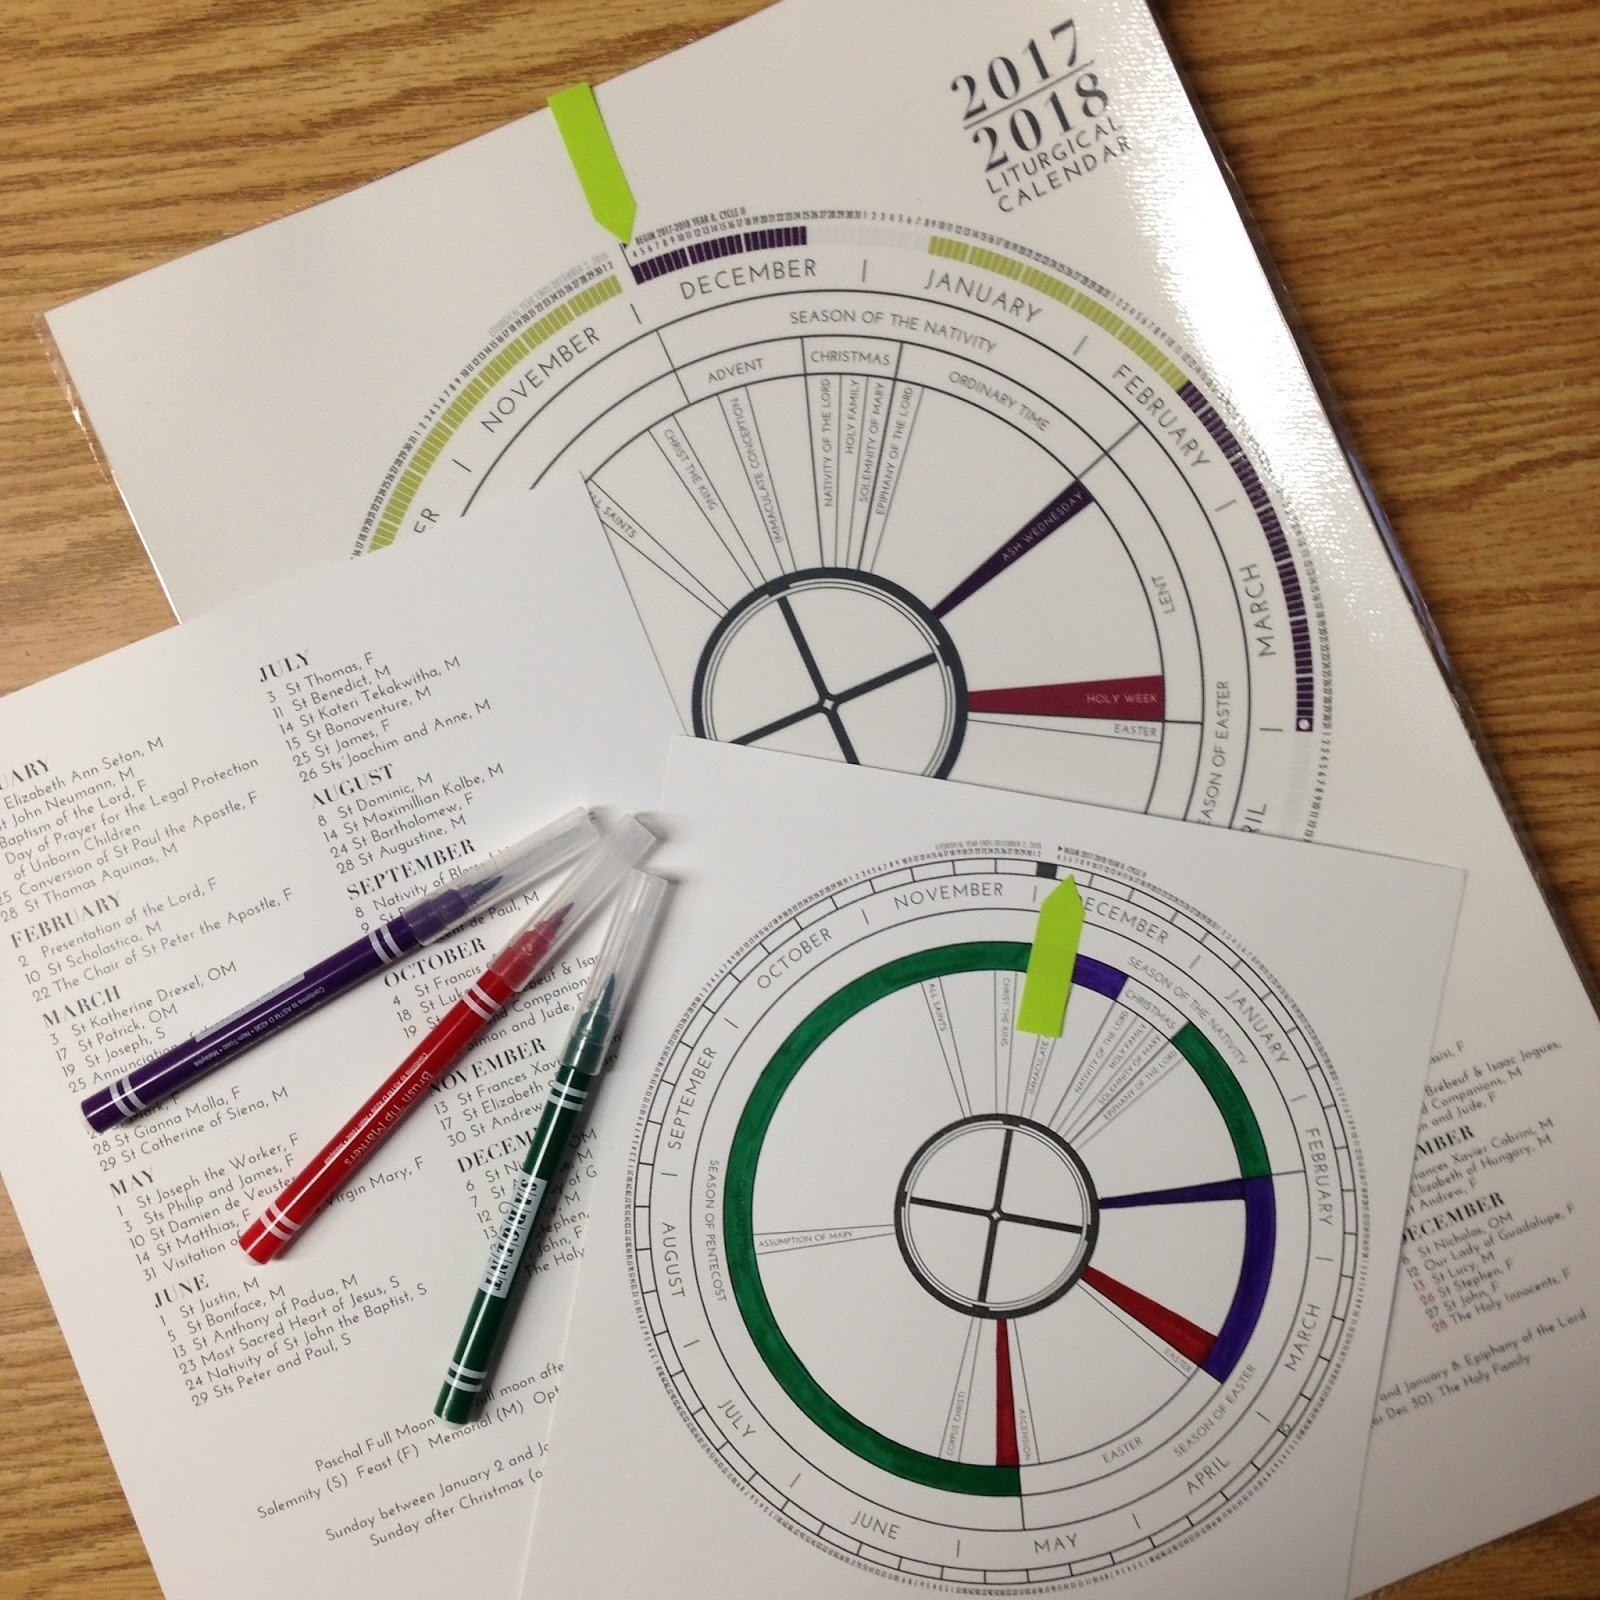 Look To Him And Be Radiant: Learning About The Liturgical Year  Teaching The Catholic Liturgical Calendar